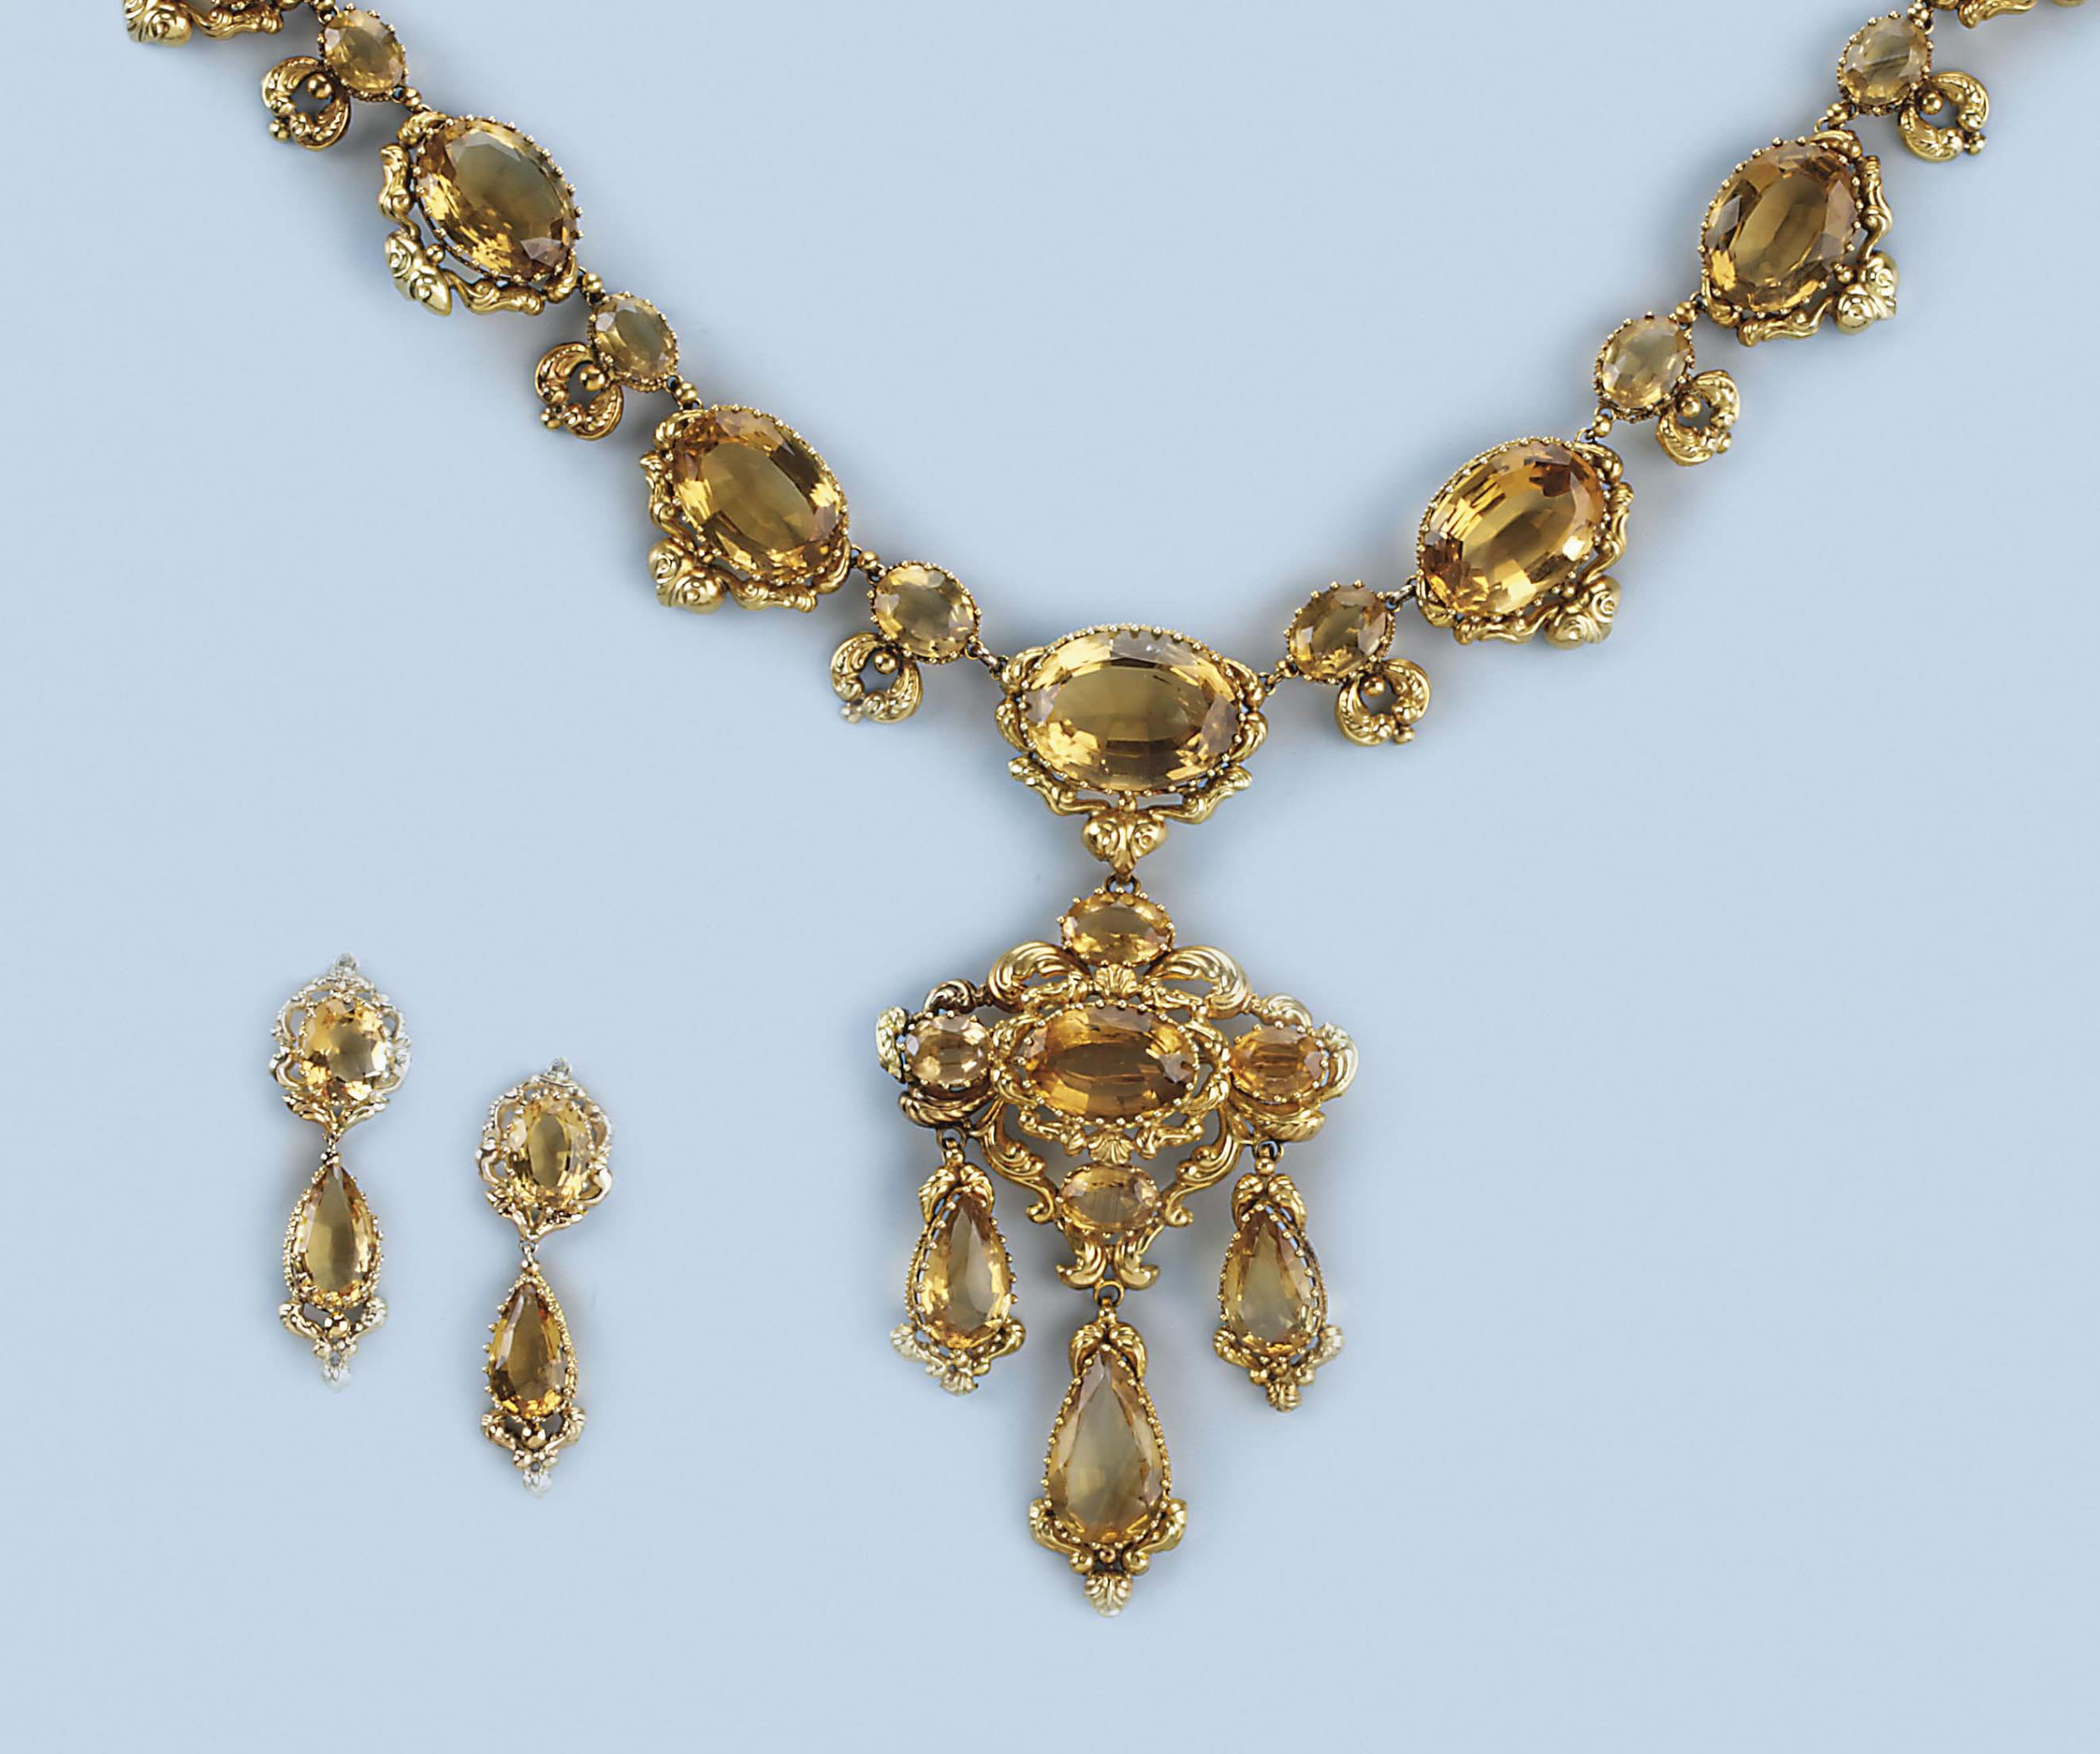 A set of antique citrine necklace and earrings